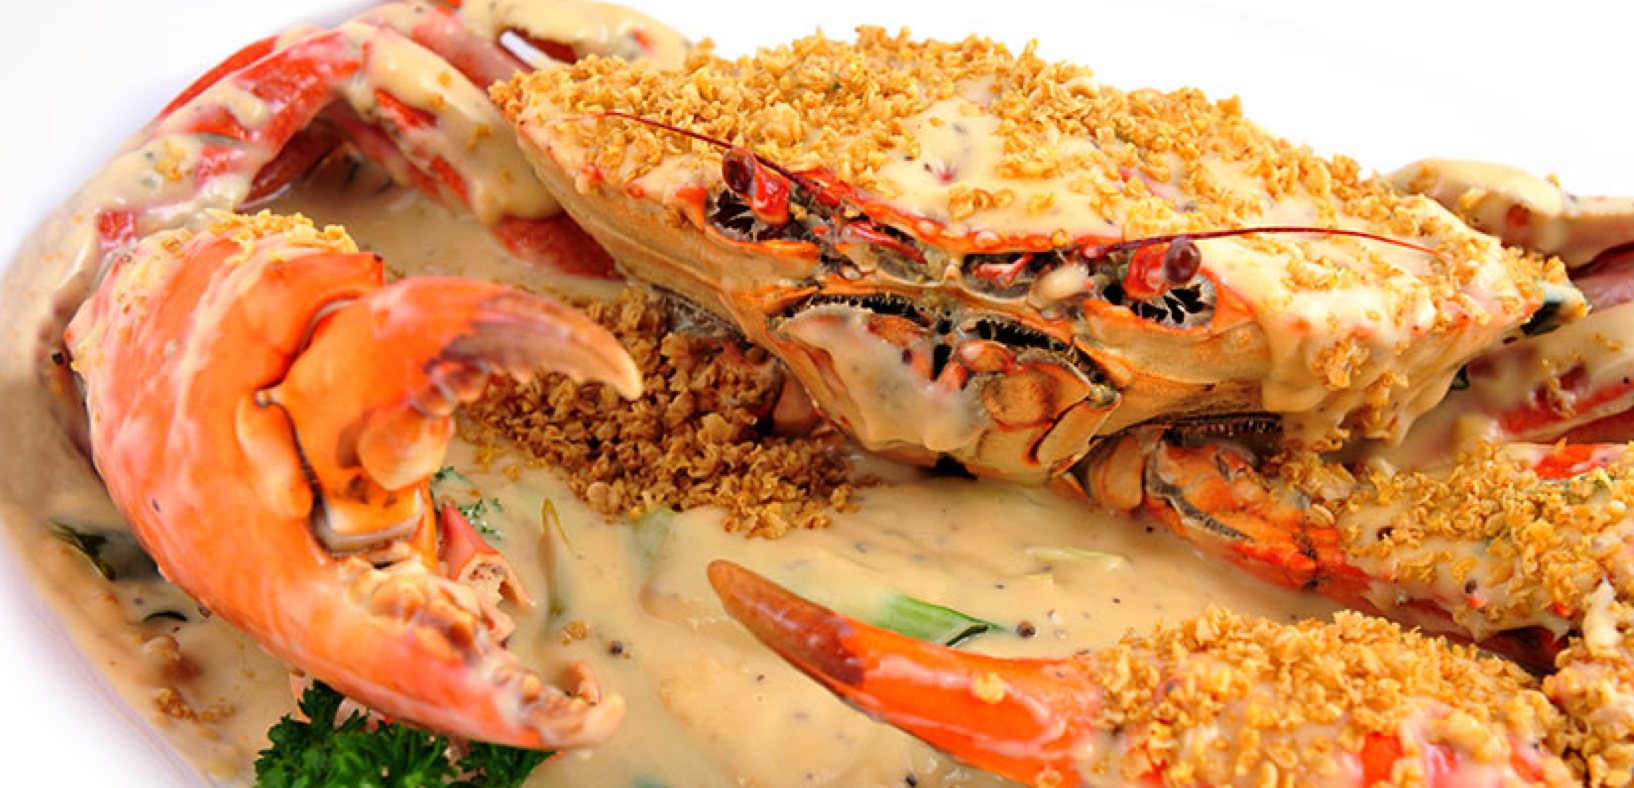 The best most affordable seafood restaurant in singapore for Animals that are included in the cuisine of seafood